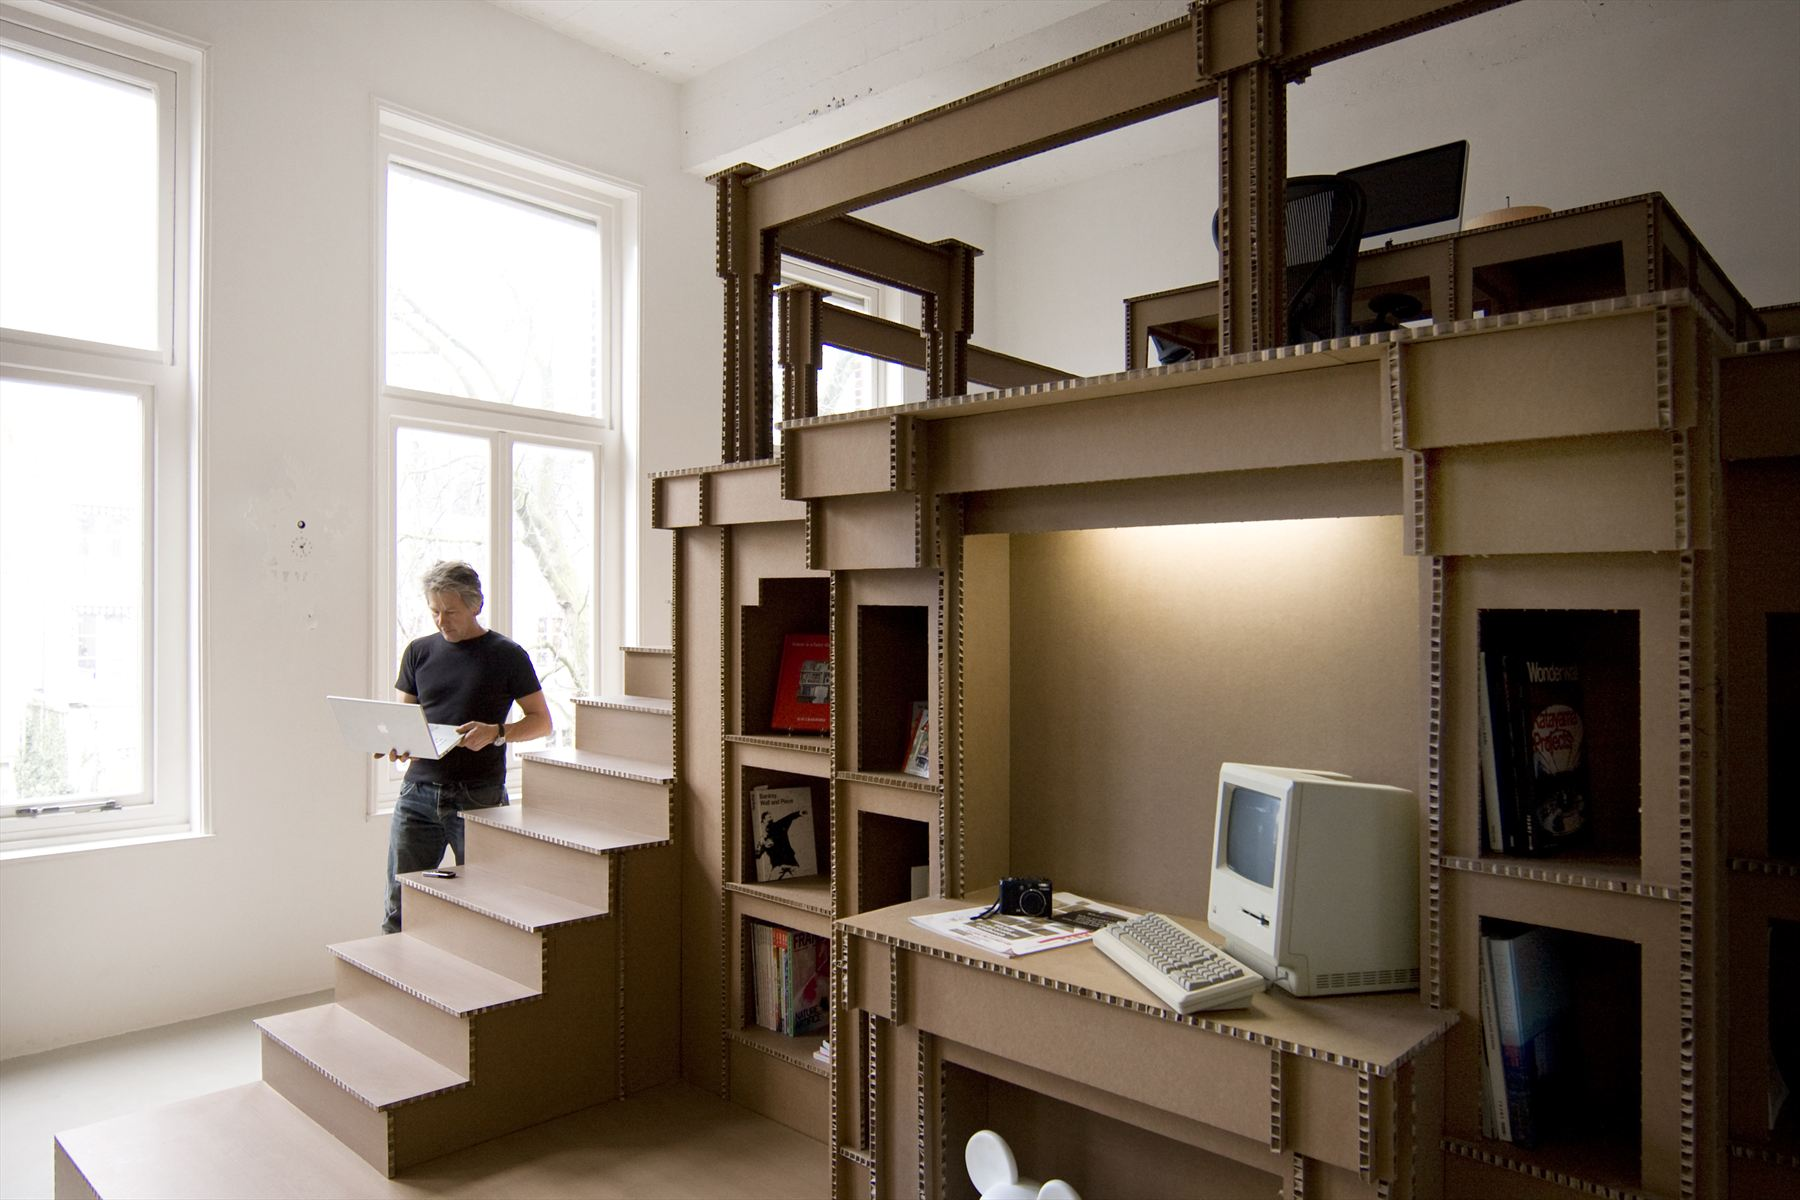 Nothing Cardboard Office Interior By Alrik Koudenburg And Joost Van Bleiswijk